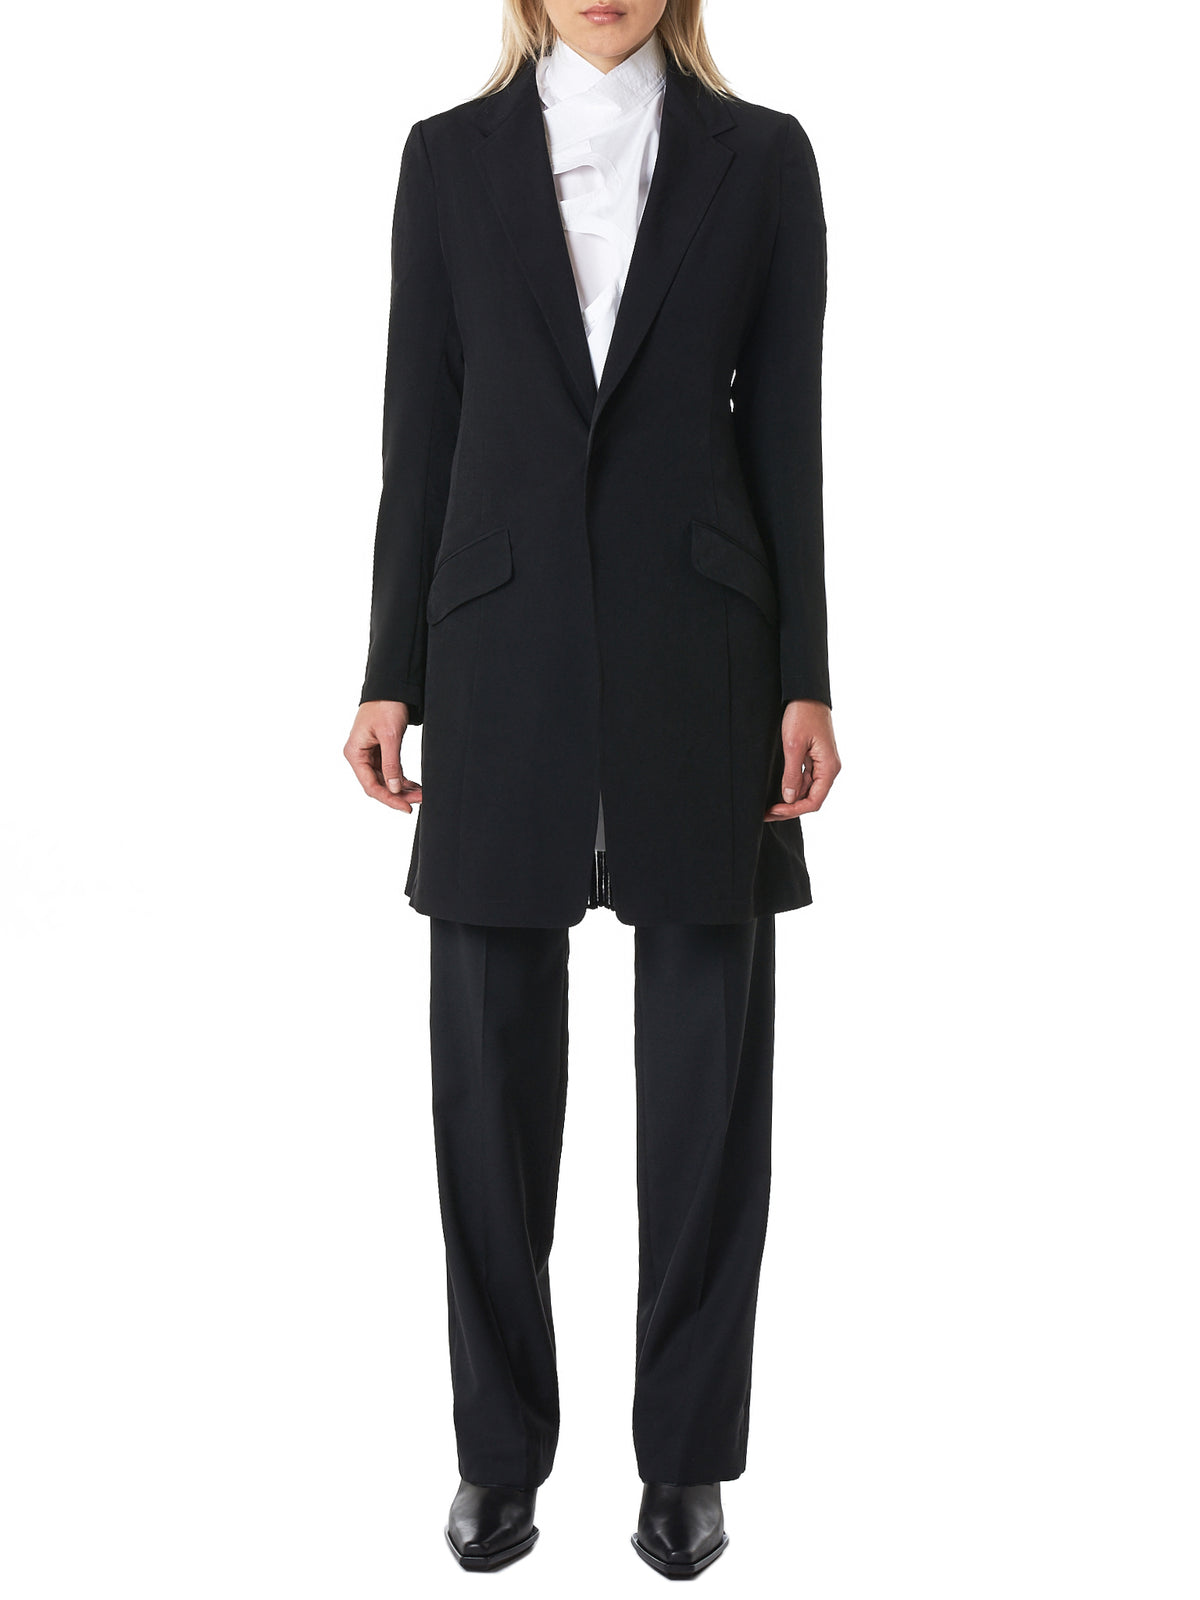 Pleated-Tail Jacket (YZ-J02-500-BLACK)